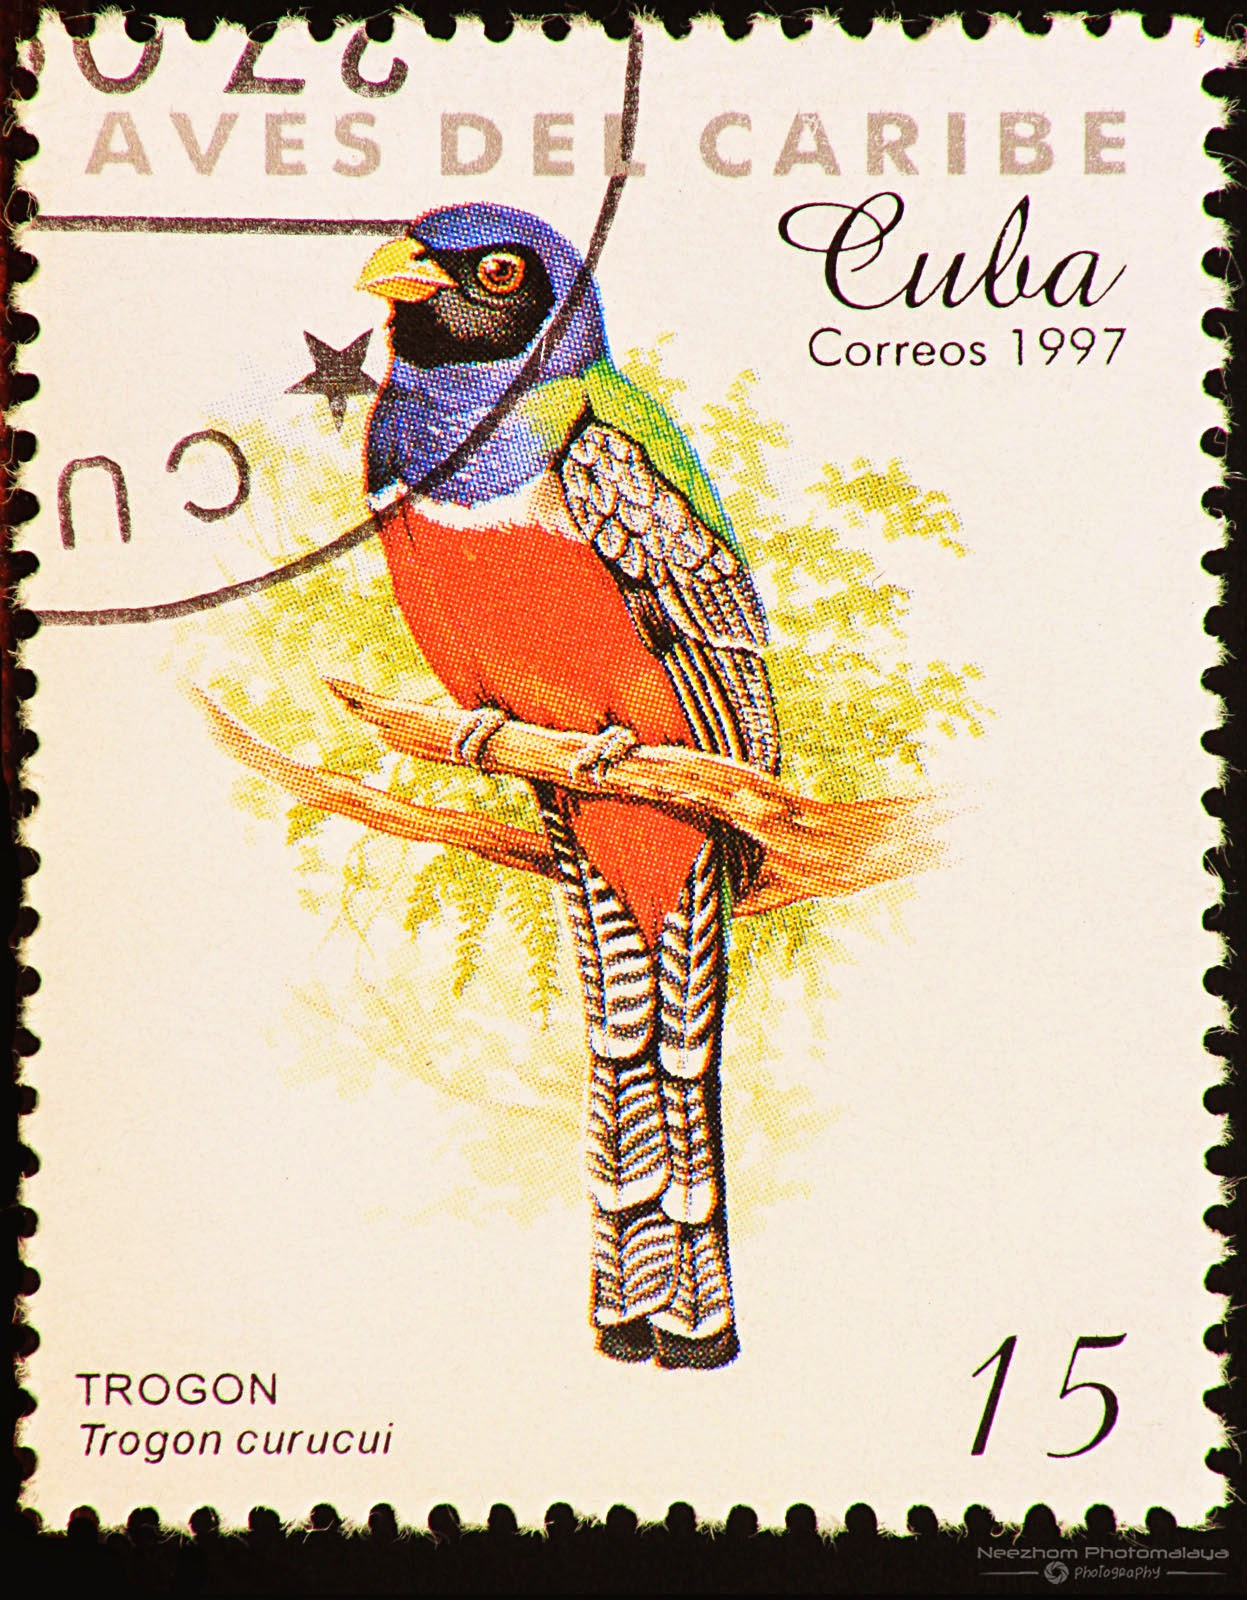 Cuba 1997 Birds of the Caribbean stamp - Blue-crowned Trogon (Trogon curucui) 15 c